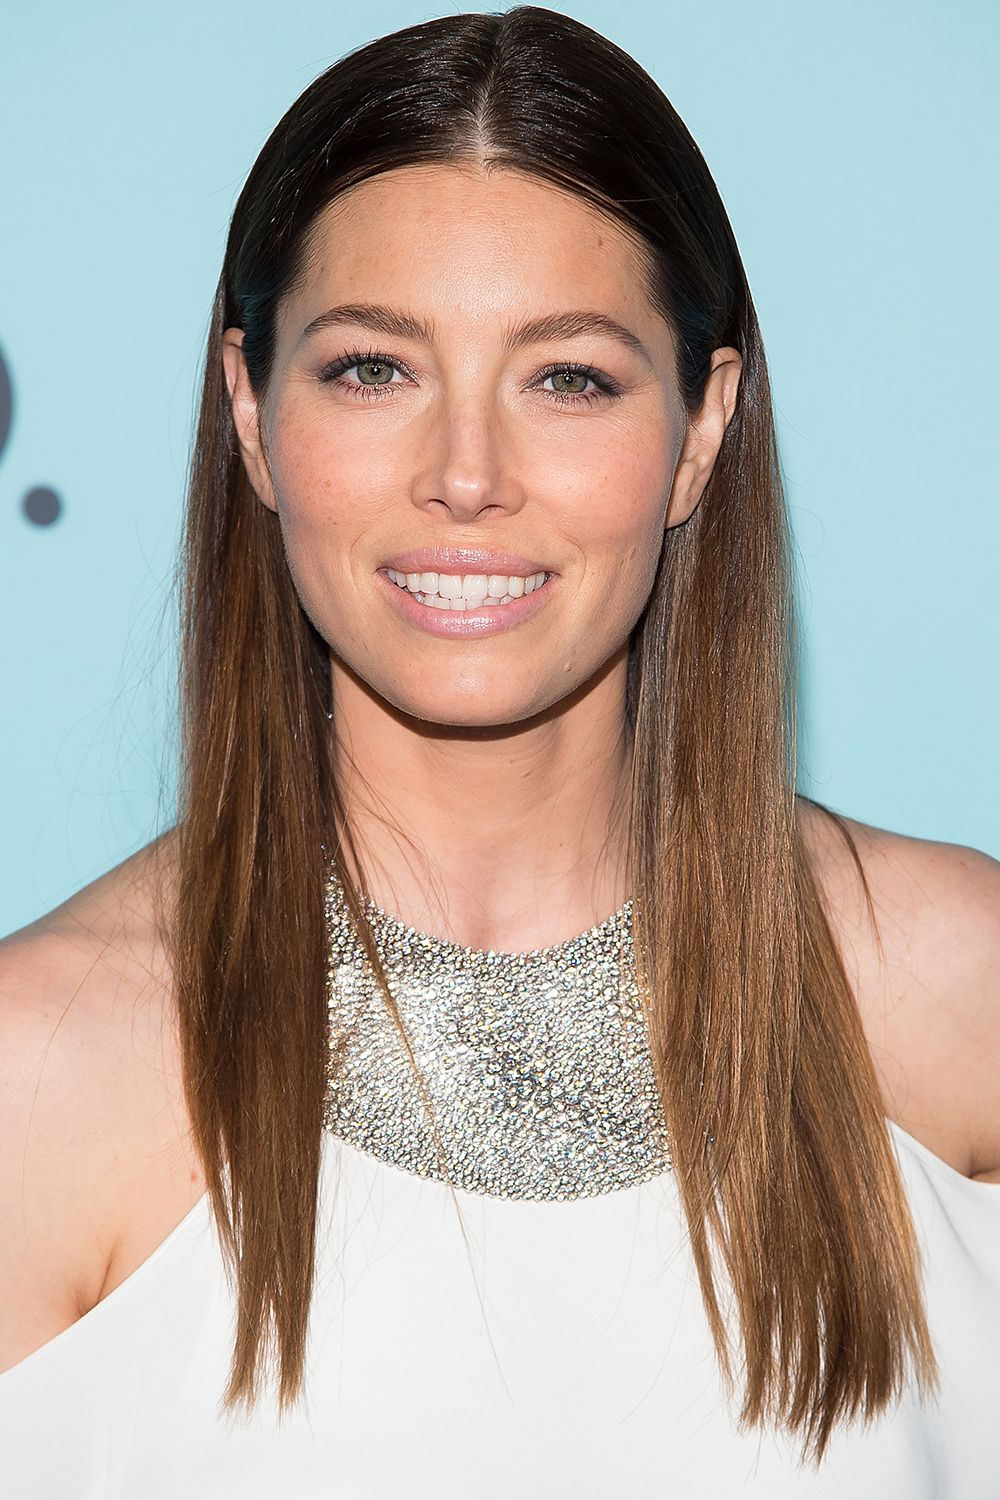 13 Balayage Hair Color Looks to Copy , Best Celebrity